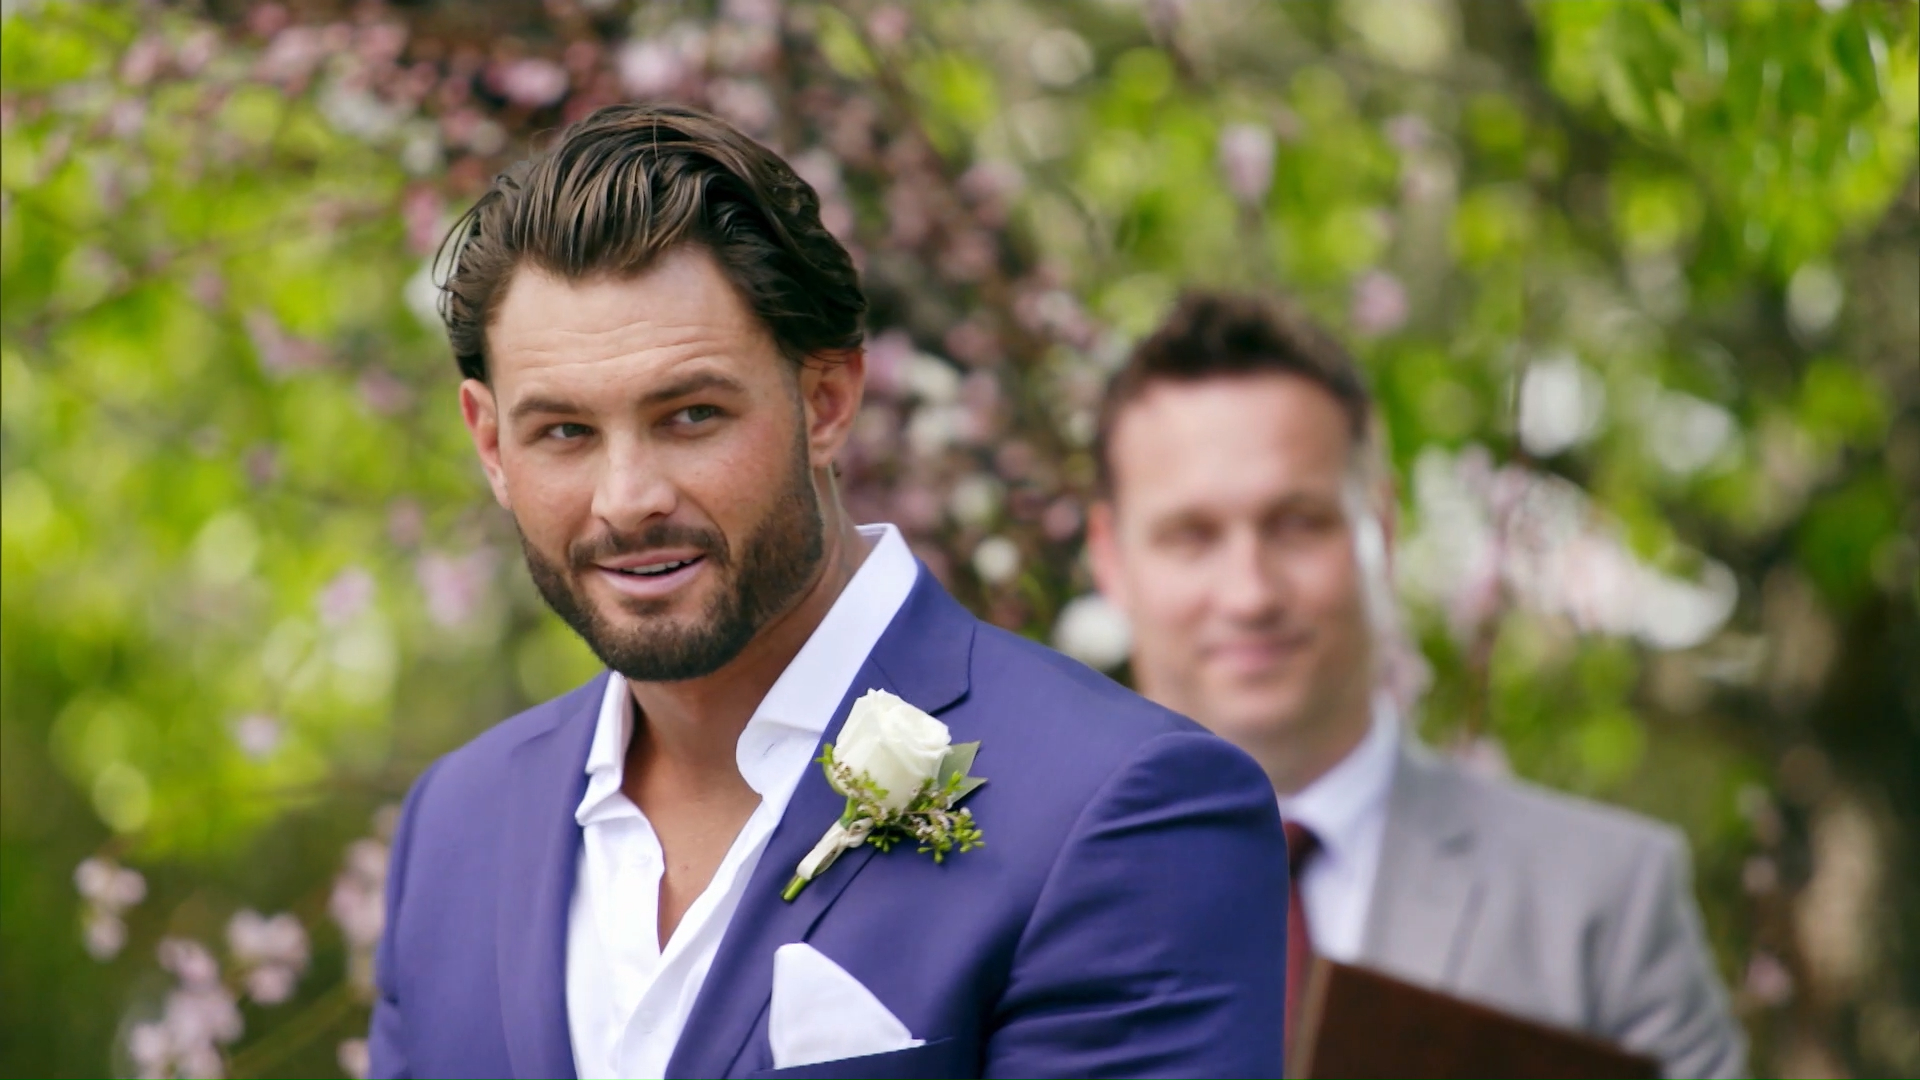 The turn: Grooms react to seeing their brides for the first time